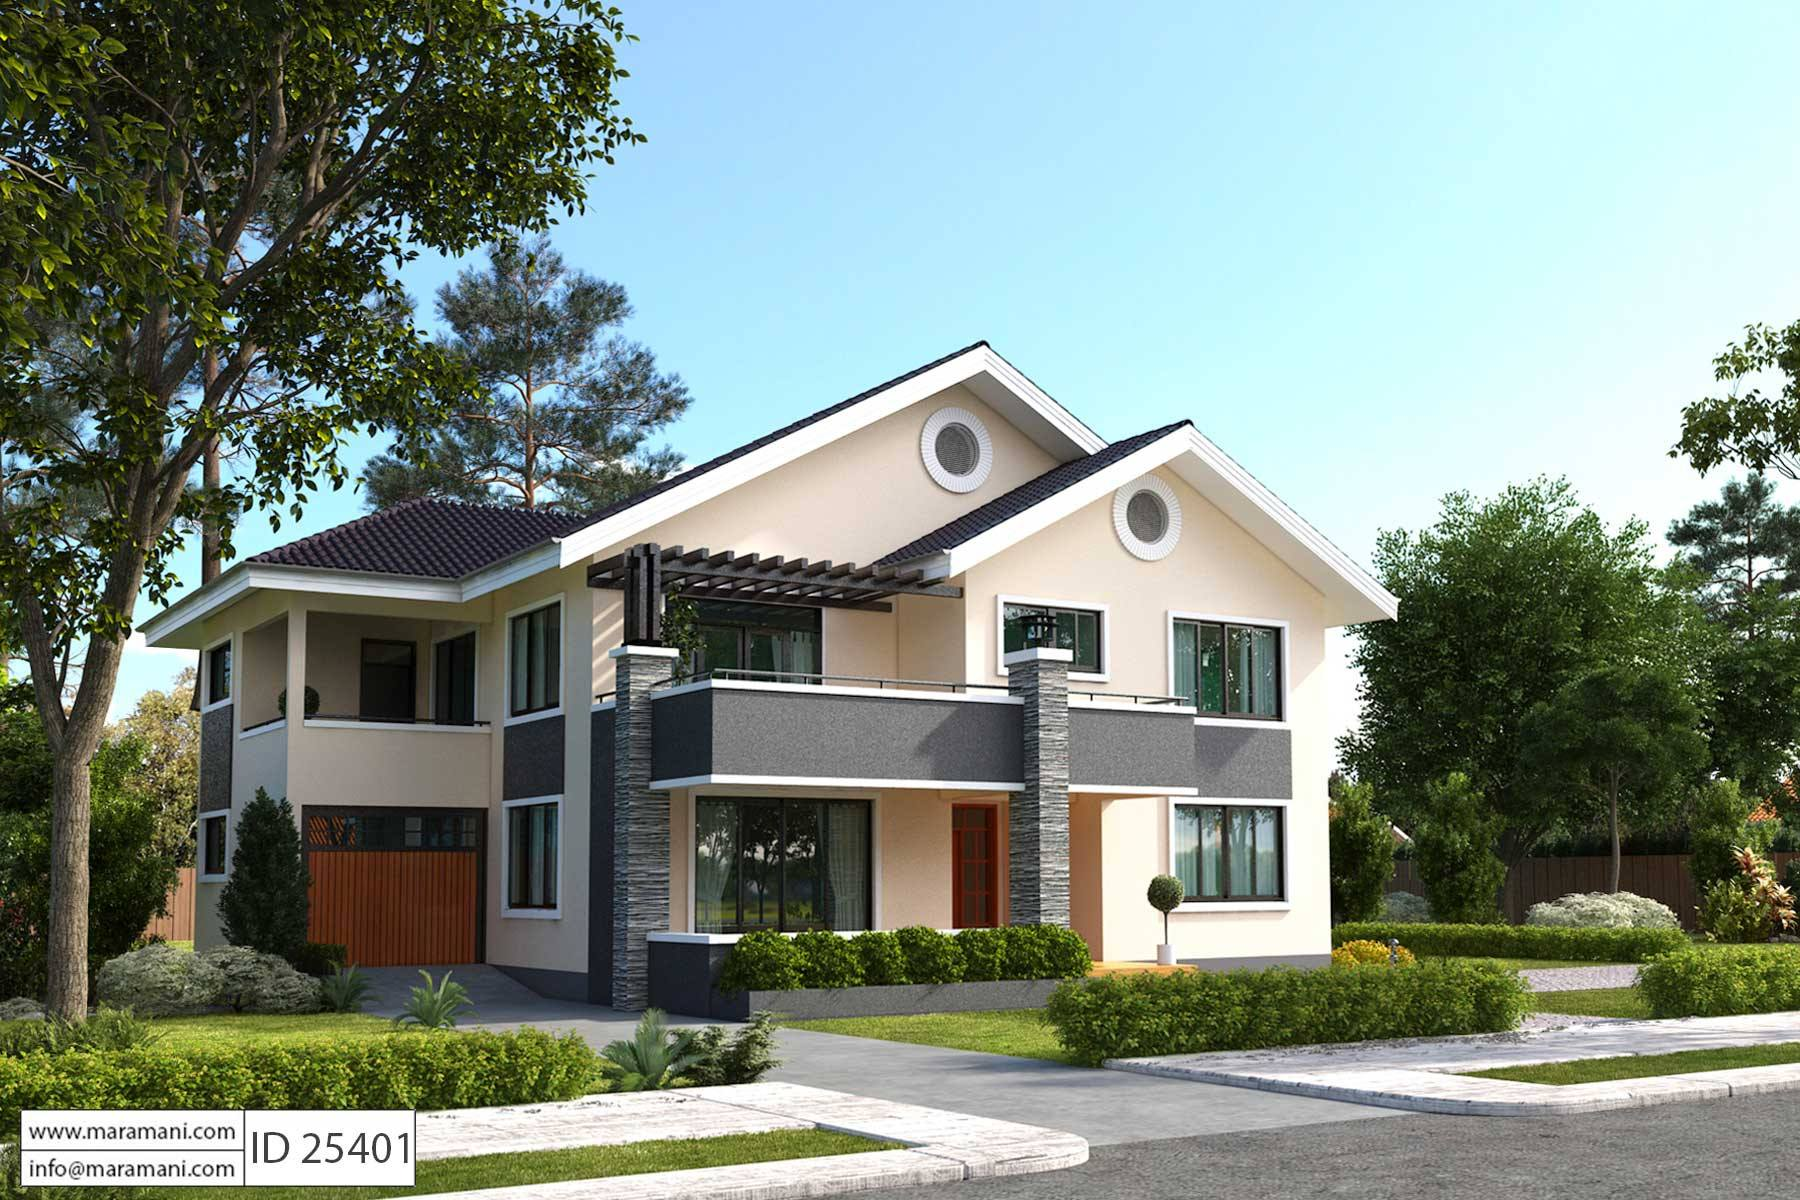 5 bedroom house plan id 25401 floor plans by maramani for 5 bedroom modern farmhouse plans